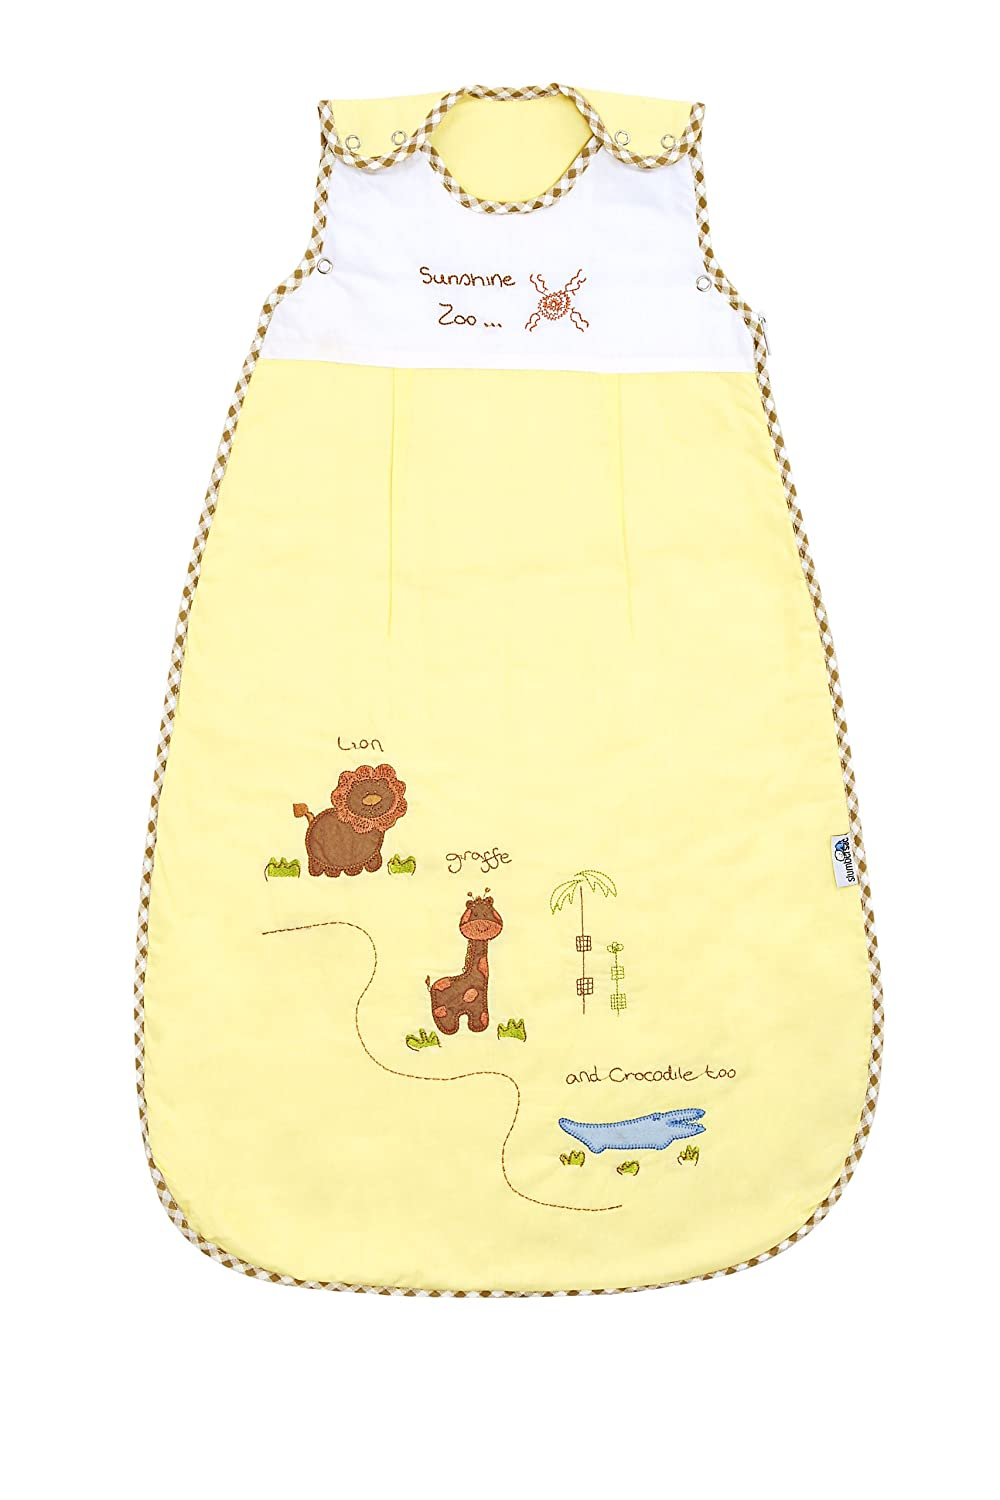 Baby Sleeping Bag approx. 2.5 Tog - Zoo, 3-6 years/inch Slumbersafe